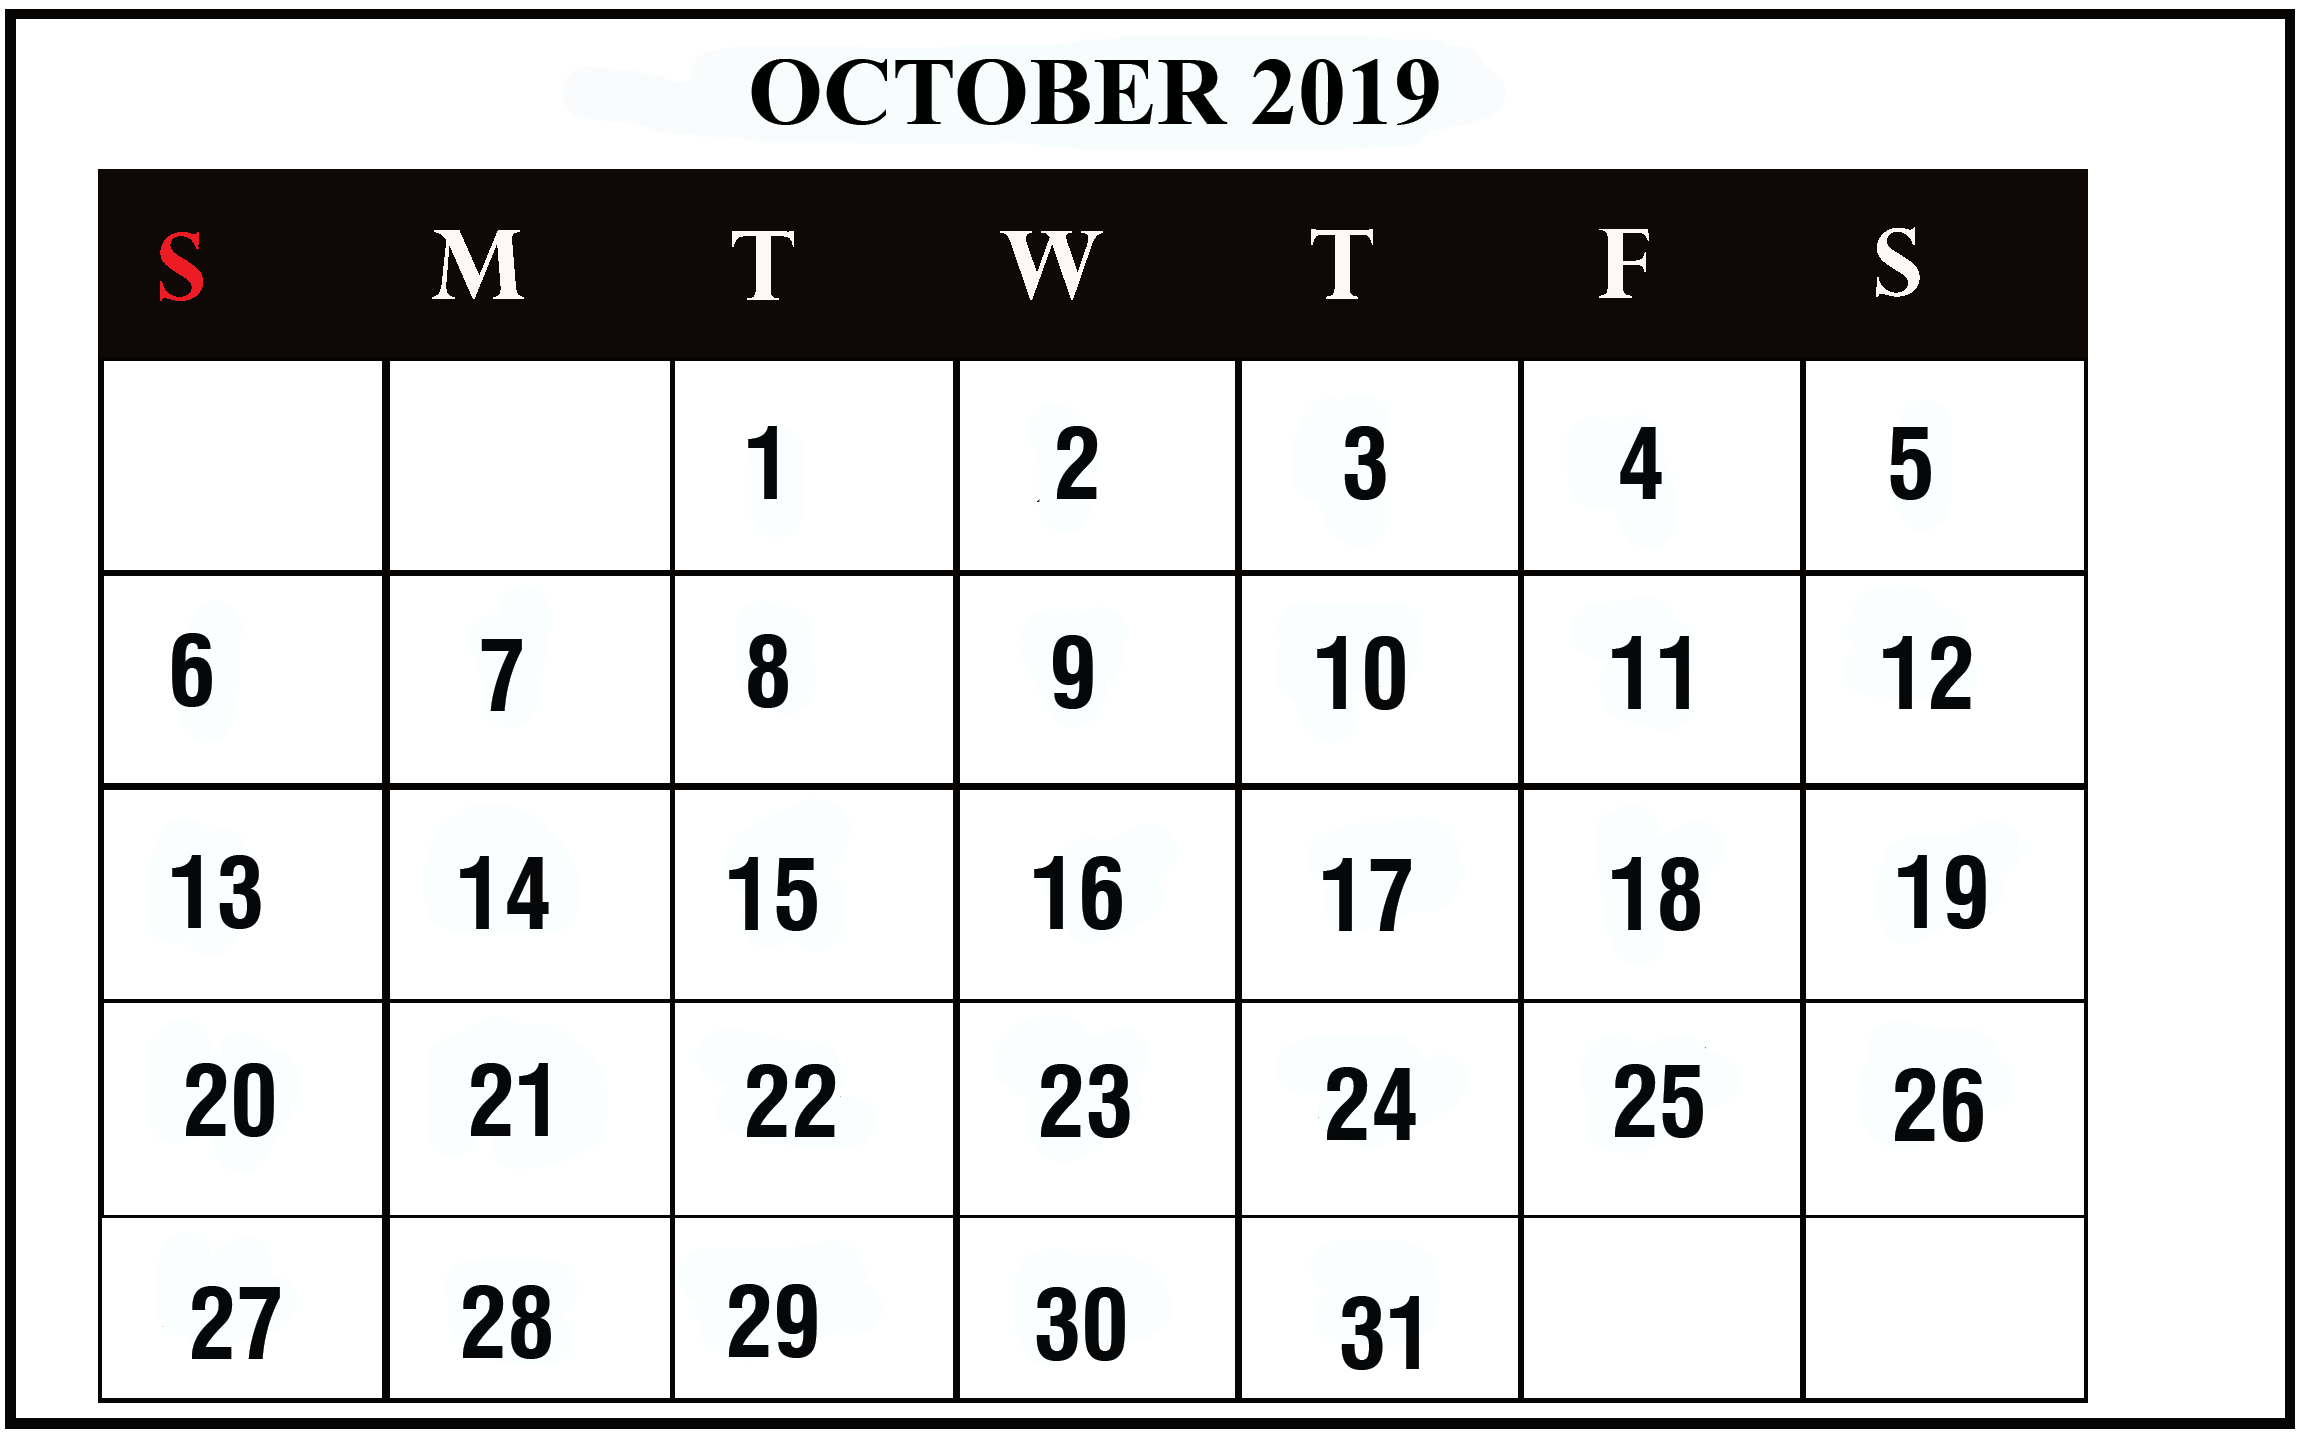 October Calendar 2019 Editable Template to Print